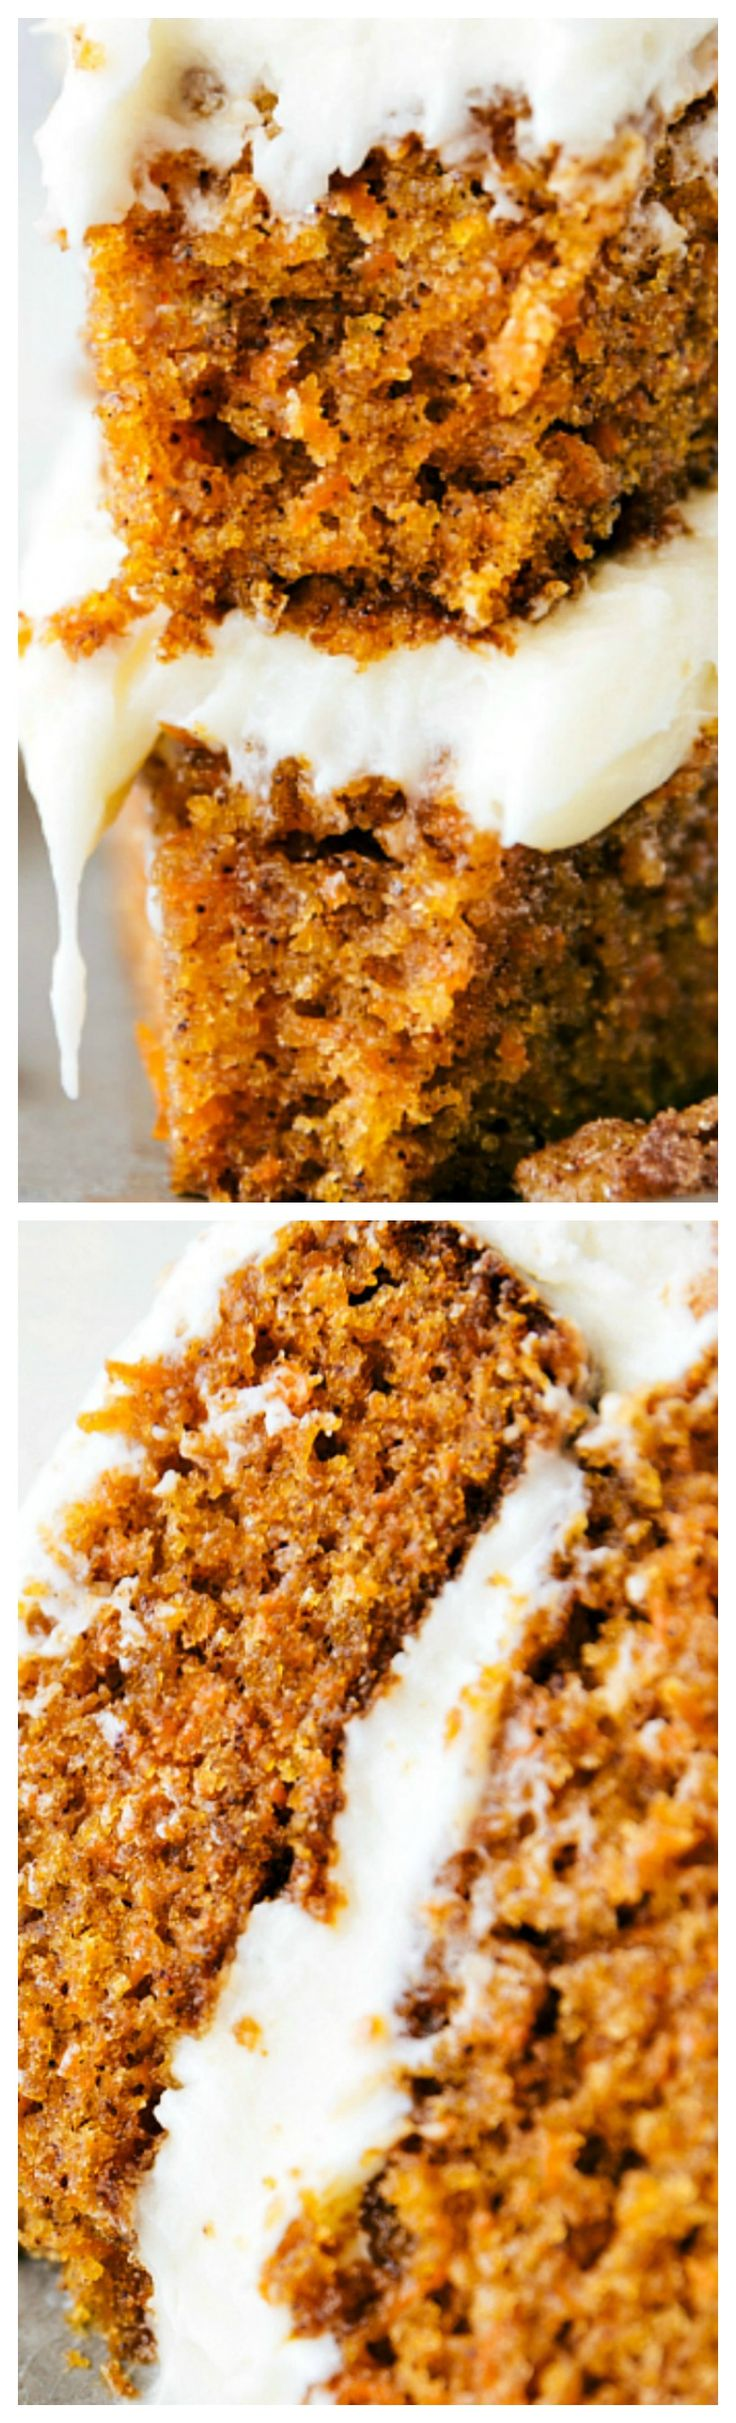 Candied Pecan Carrot Cake ~ The best carrot cake ever -- super moist, tender, and perfectly spiced with an incredible and soft cream cheese frosting. The cake is coated in candied pecans giving it an extra delicious (and pretty) touch!